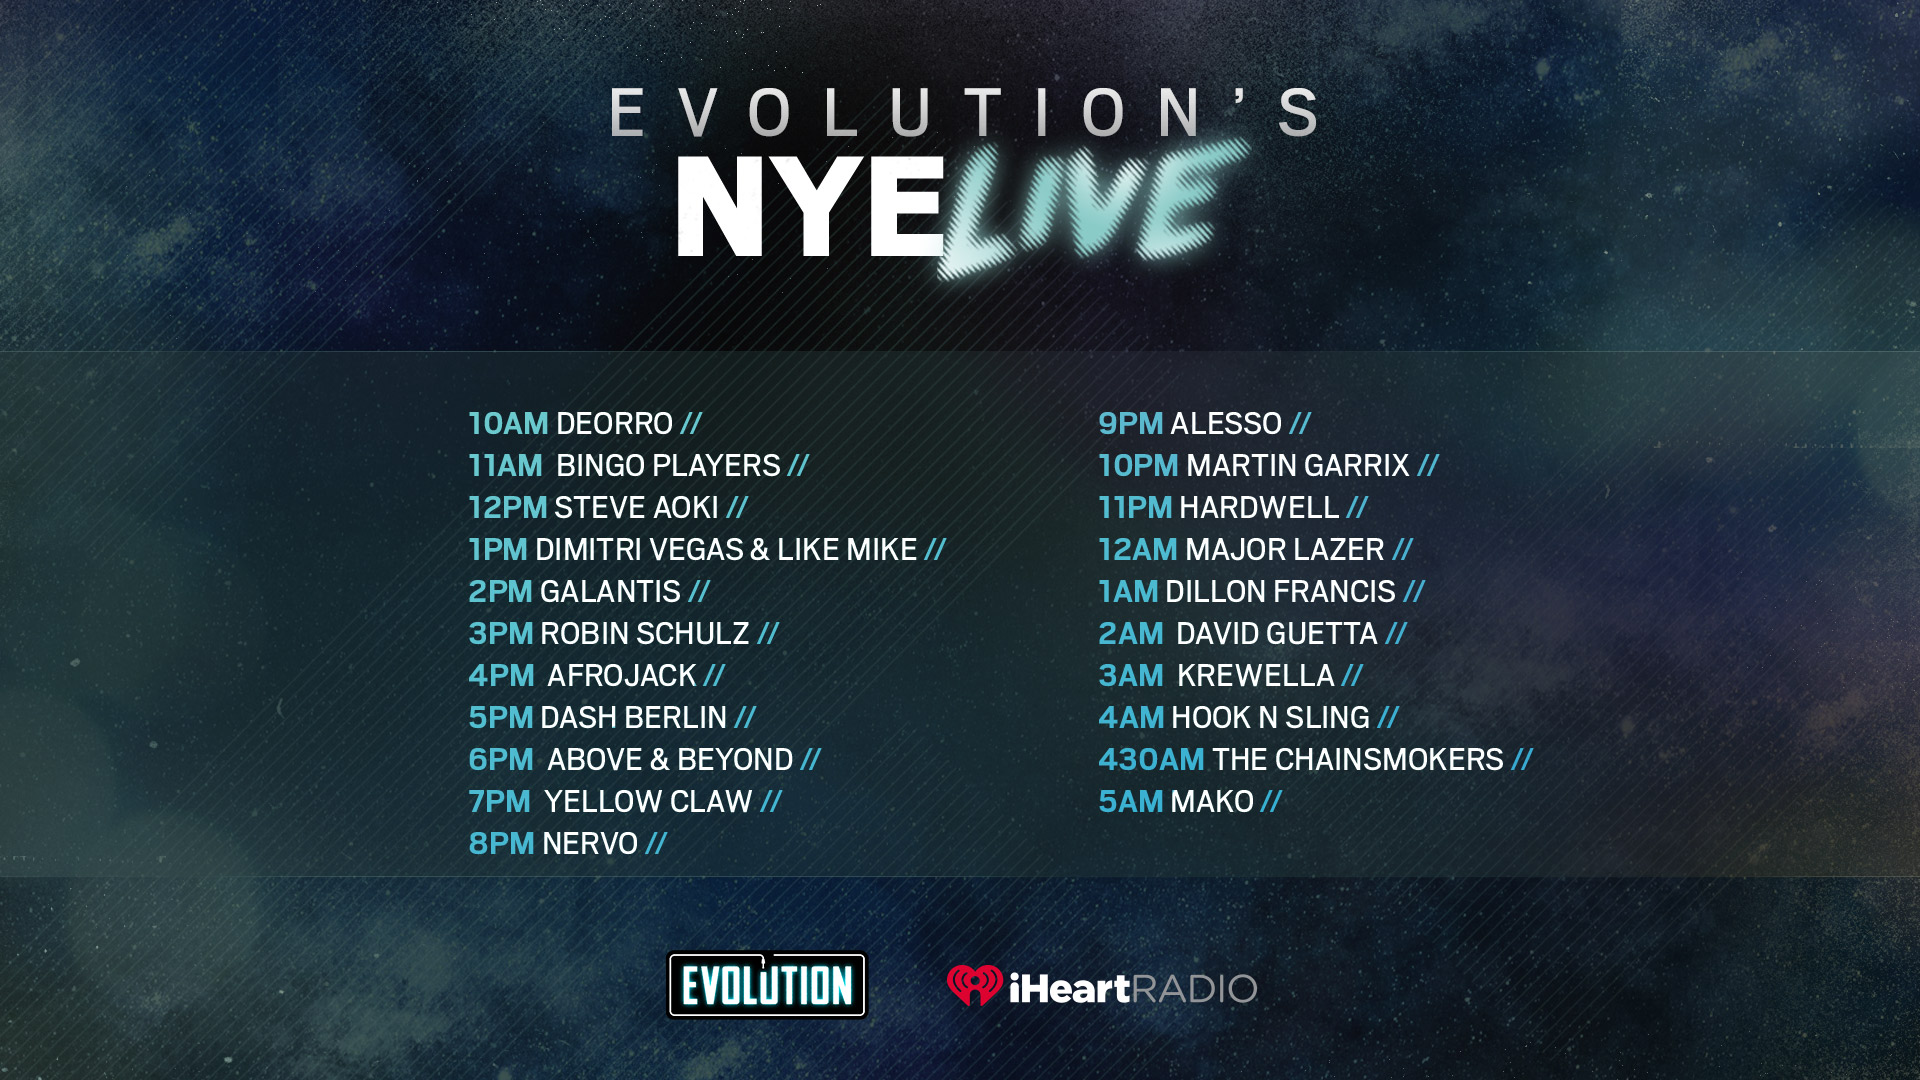 iheartradio_evolutions-nye-live